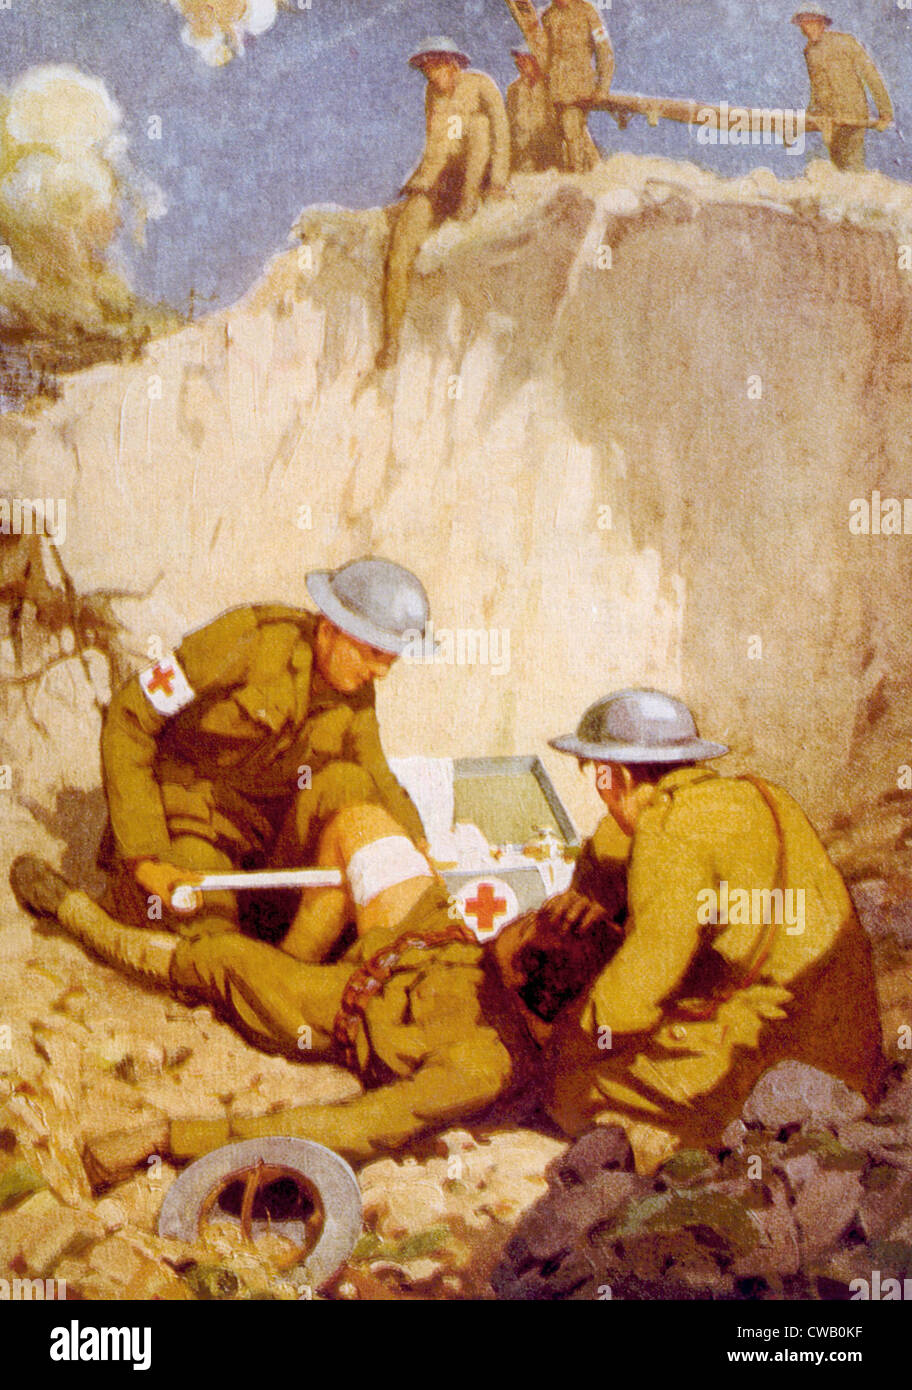 World War I, medics giving first aid on the battlefield in France, painting by J.R. Verrus, 1918 - Stock Image